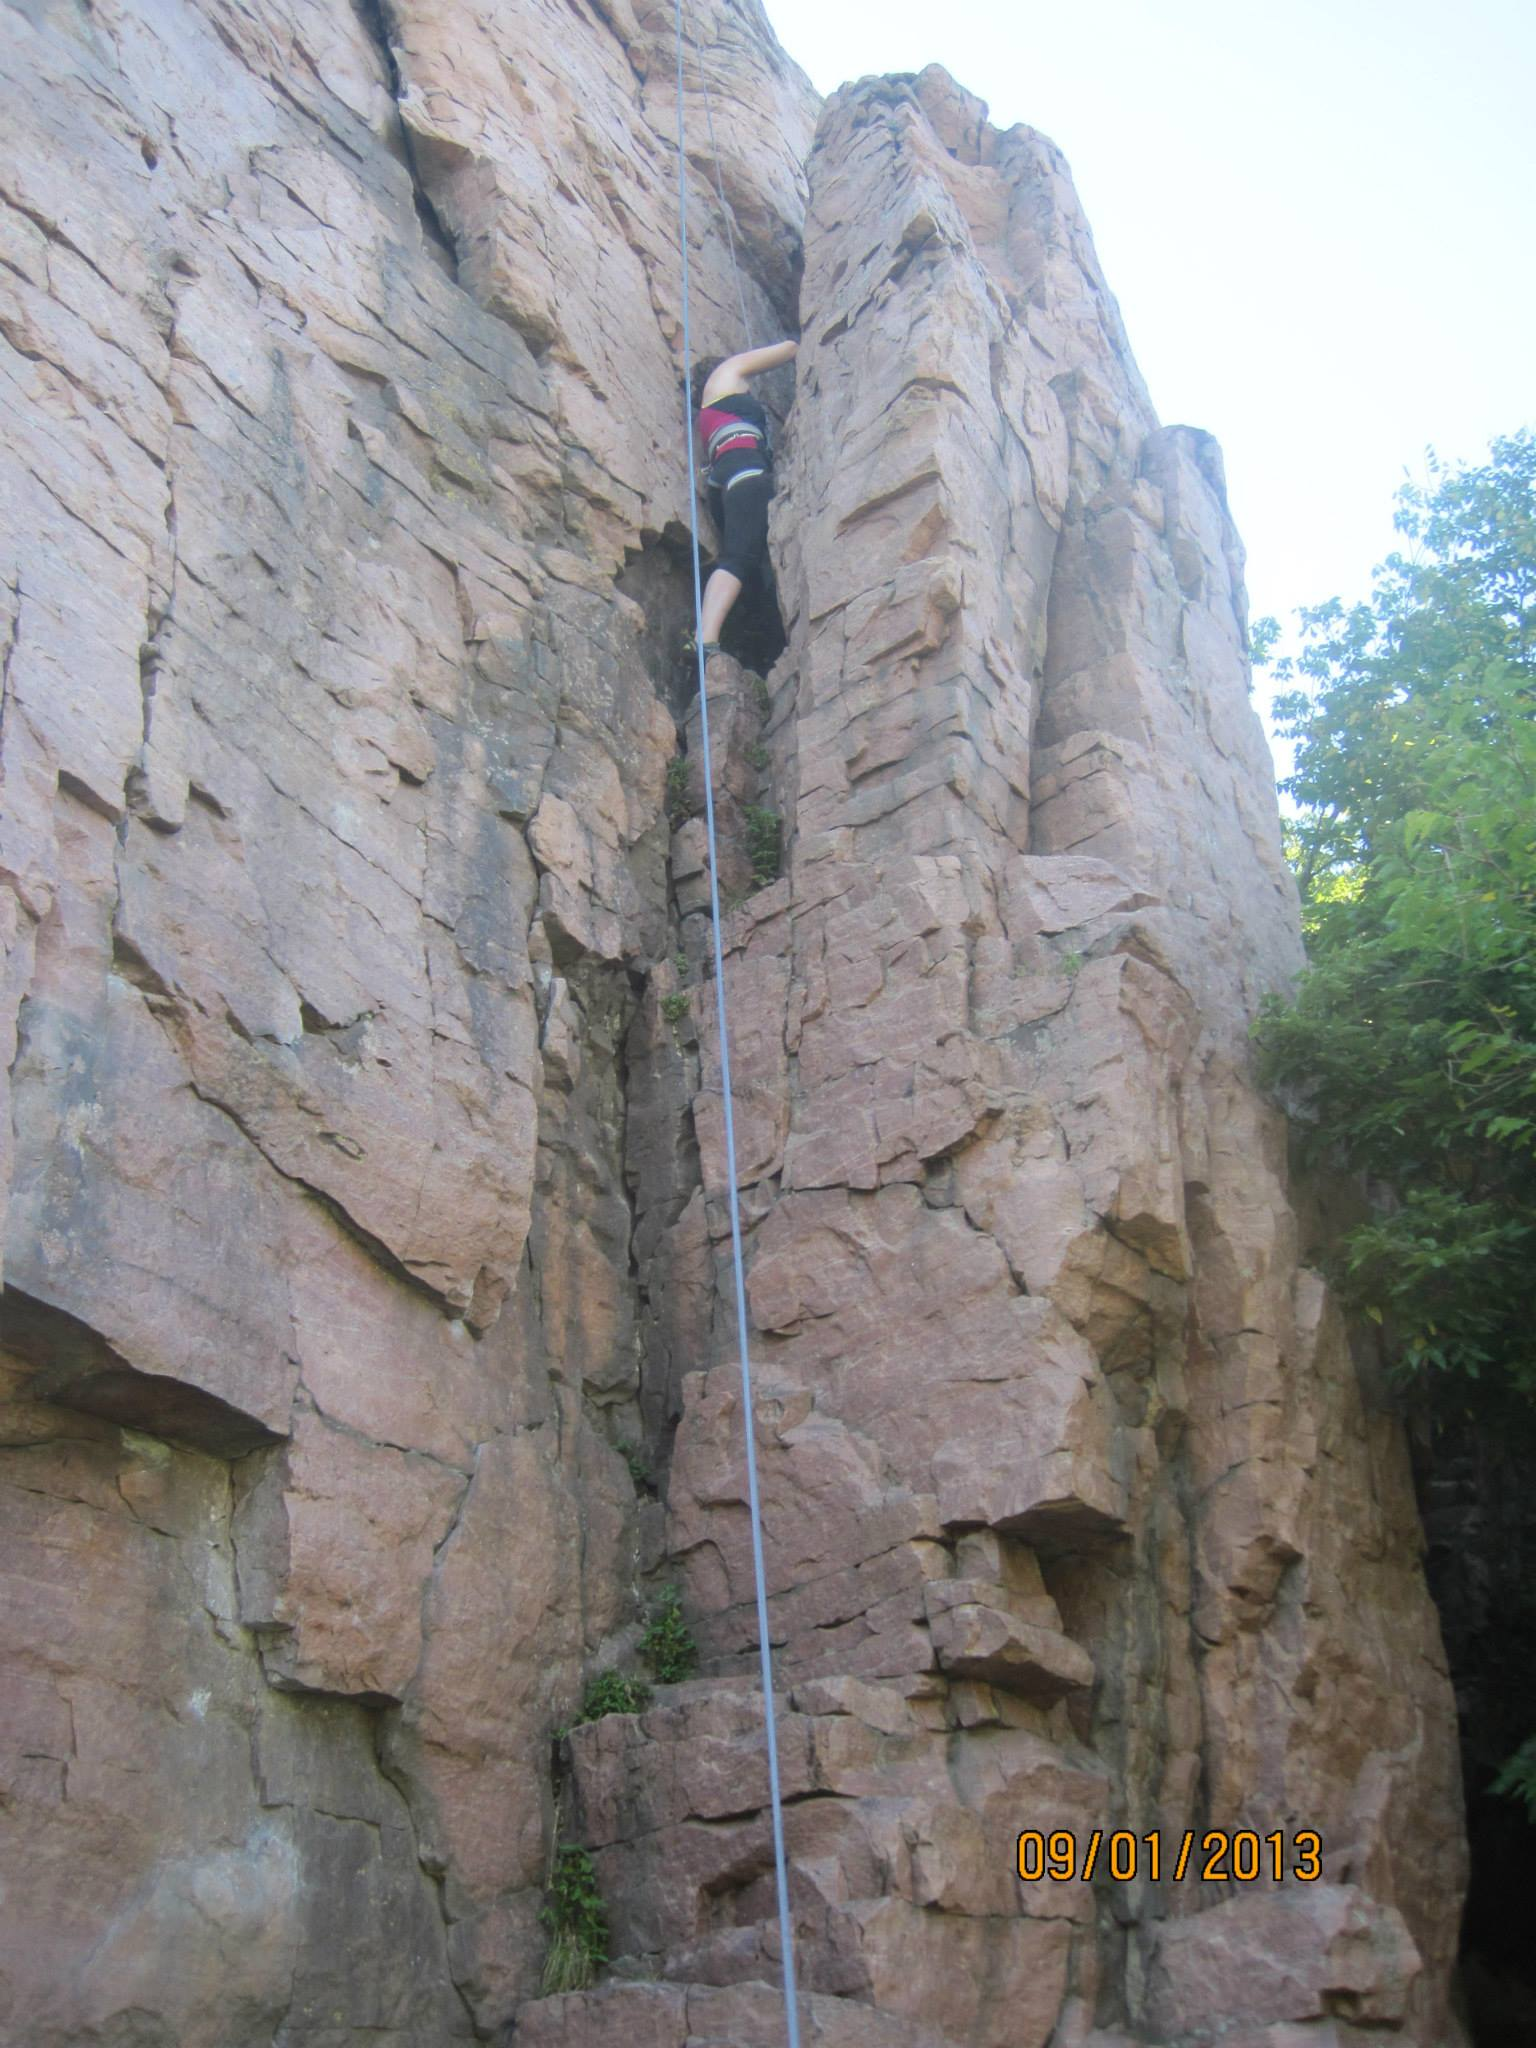 I got lost comparing myself to other climbers. Here's how I stopped.